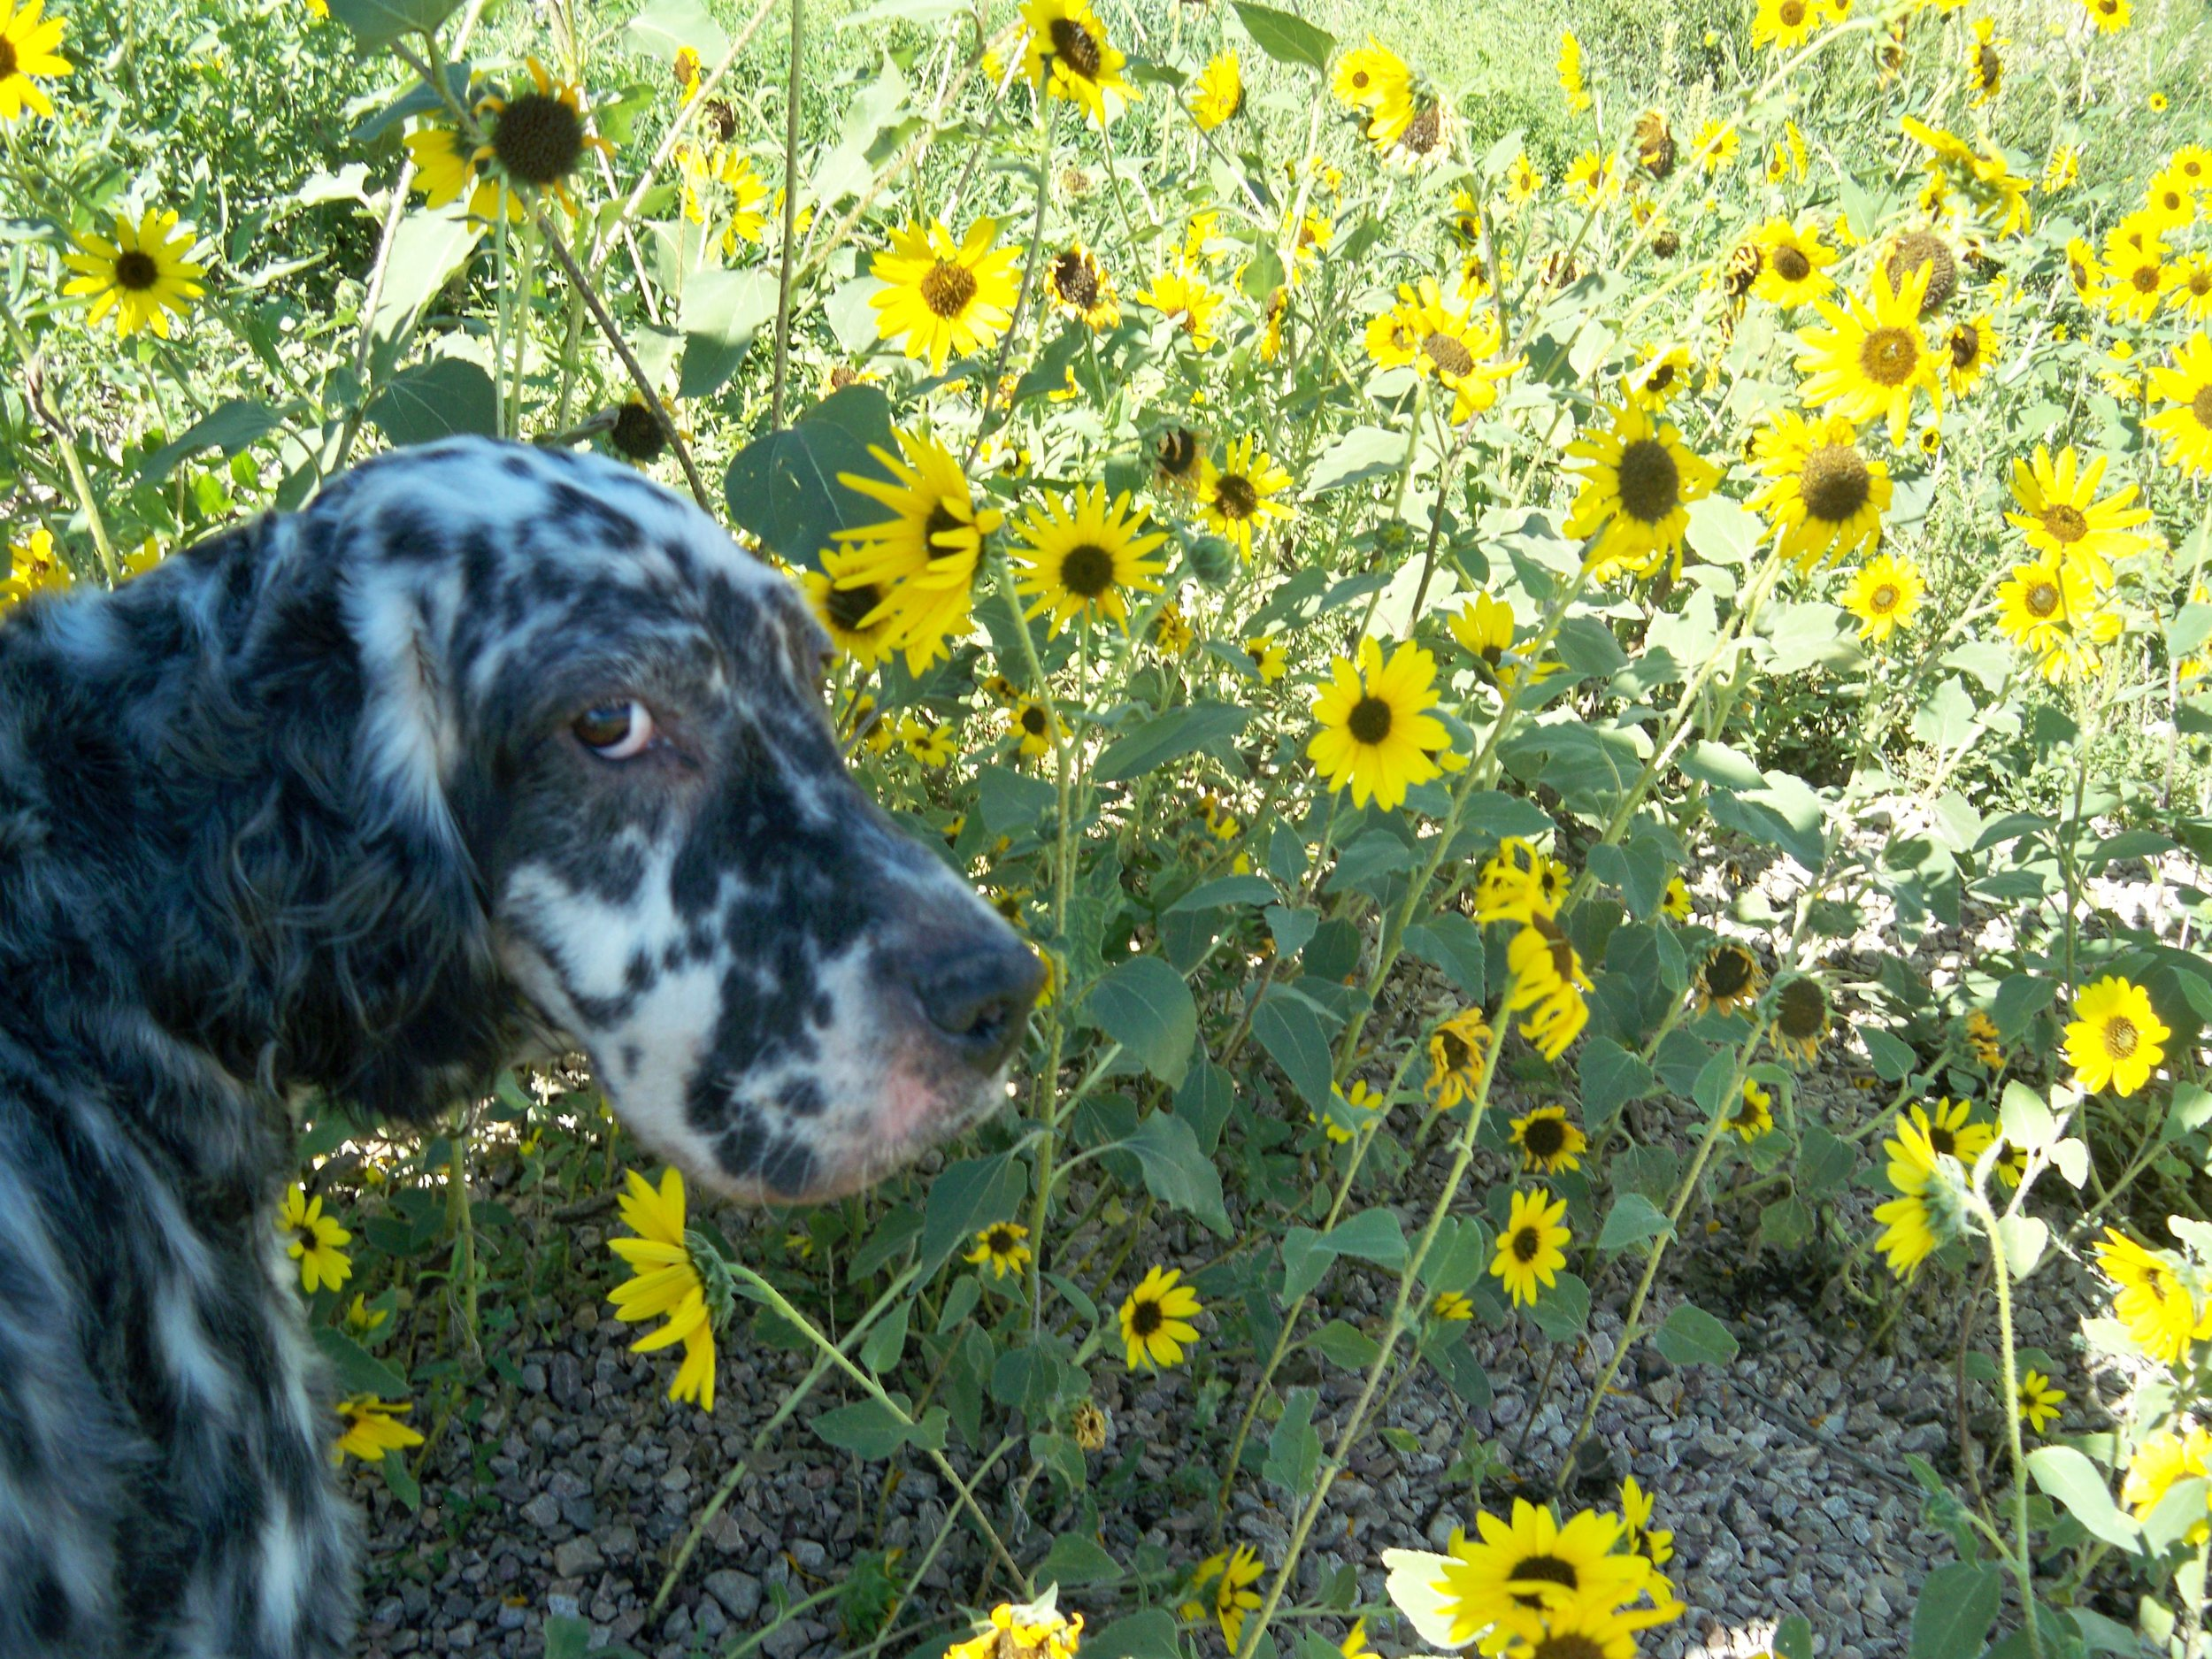 didn't really see me smelling the flowers...JPG